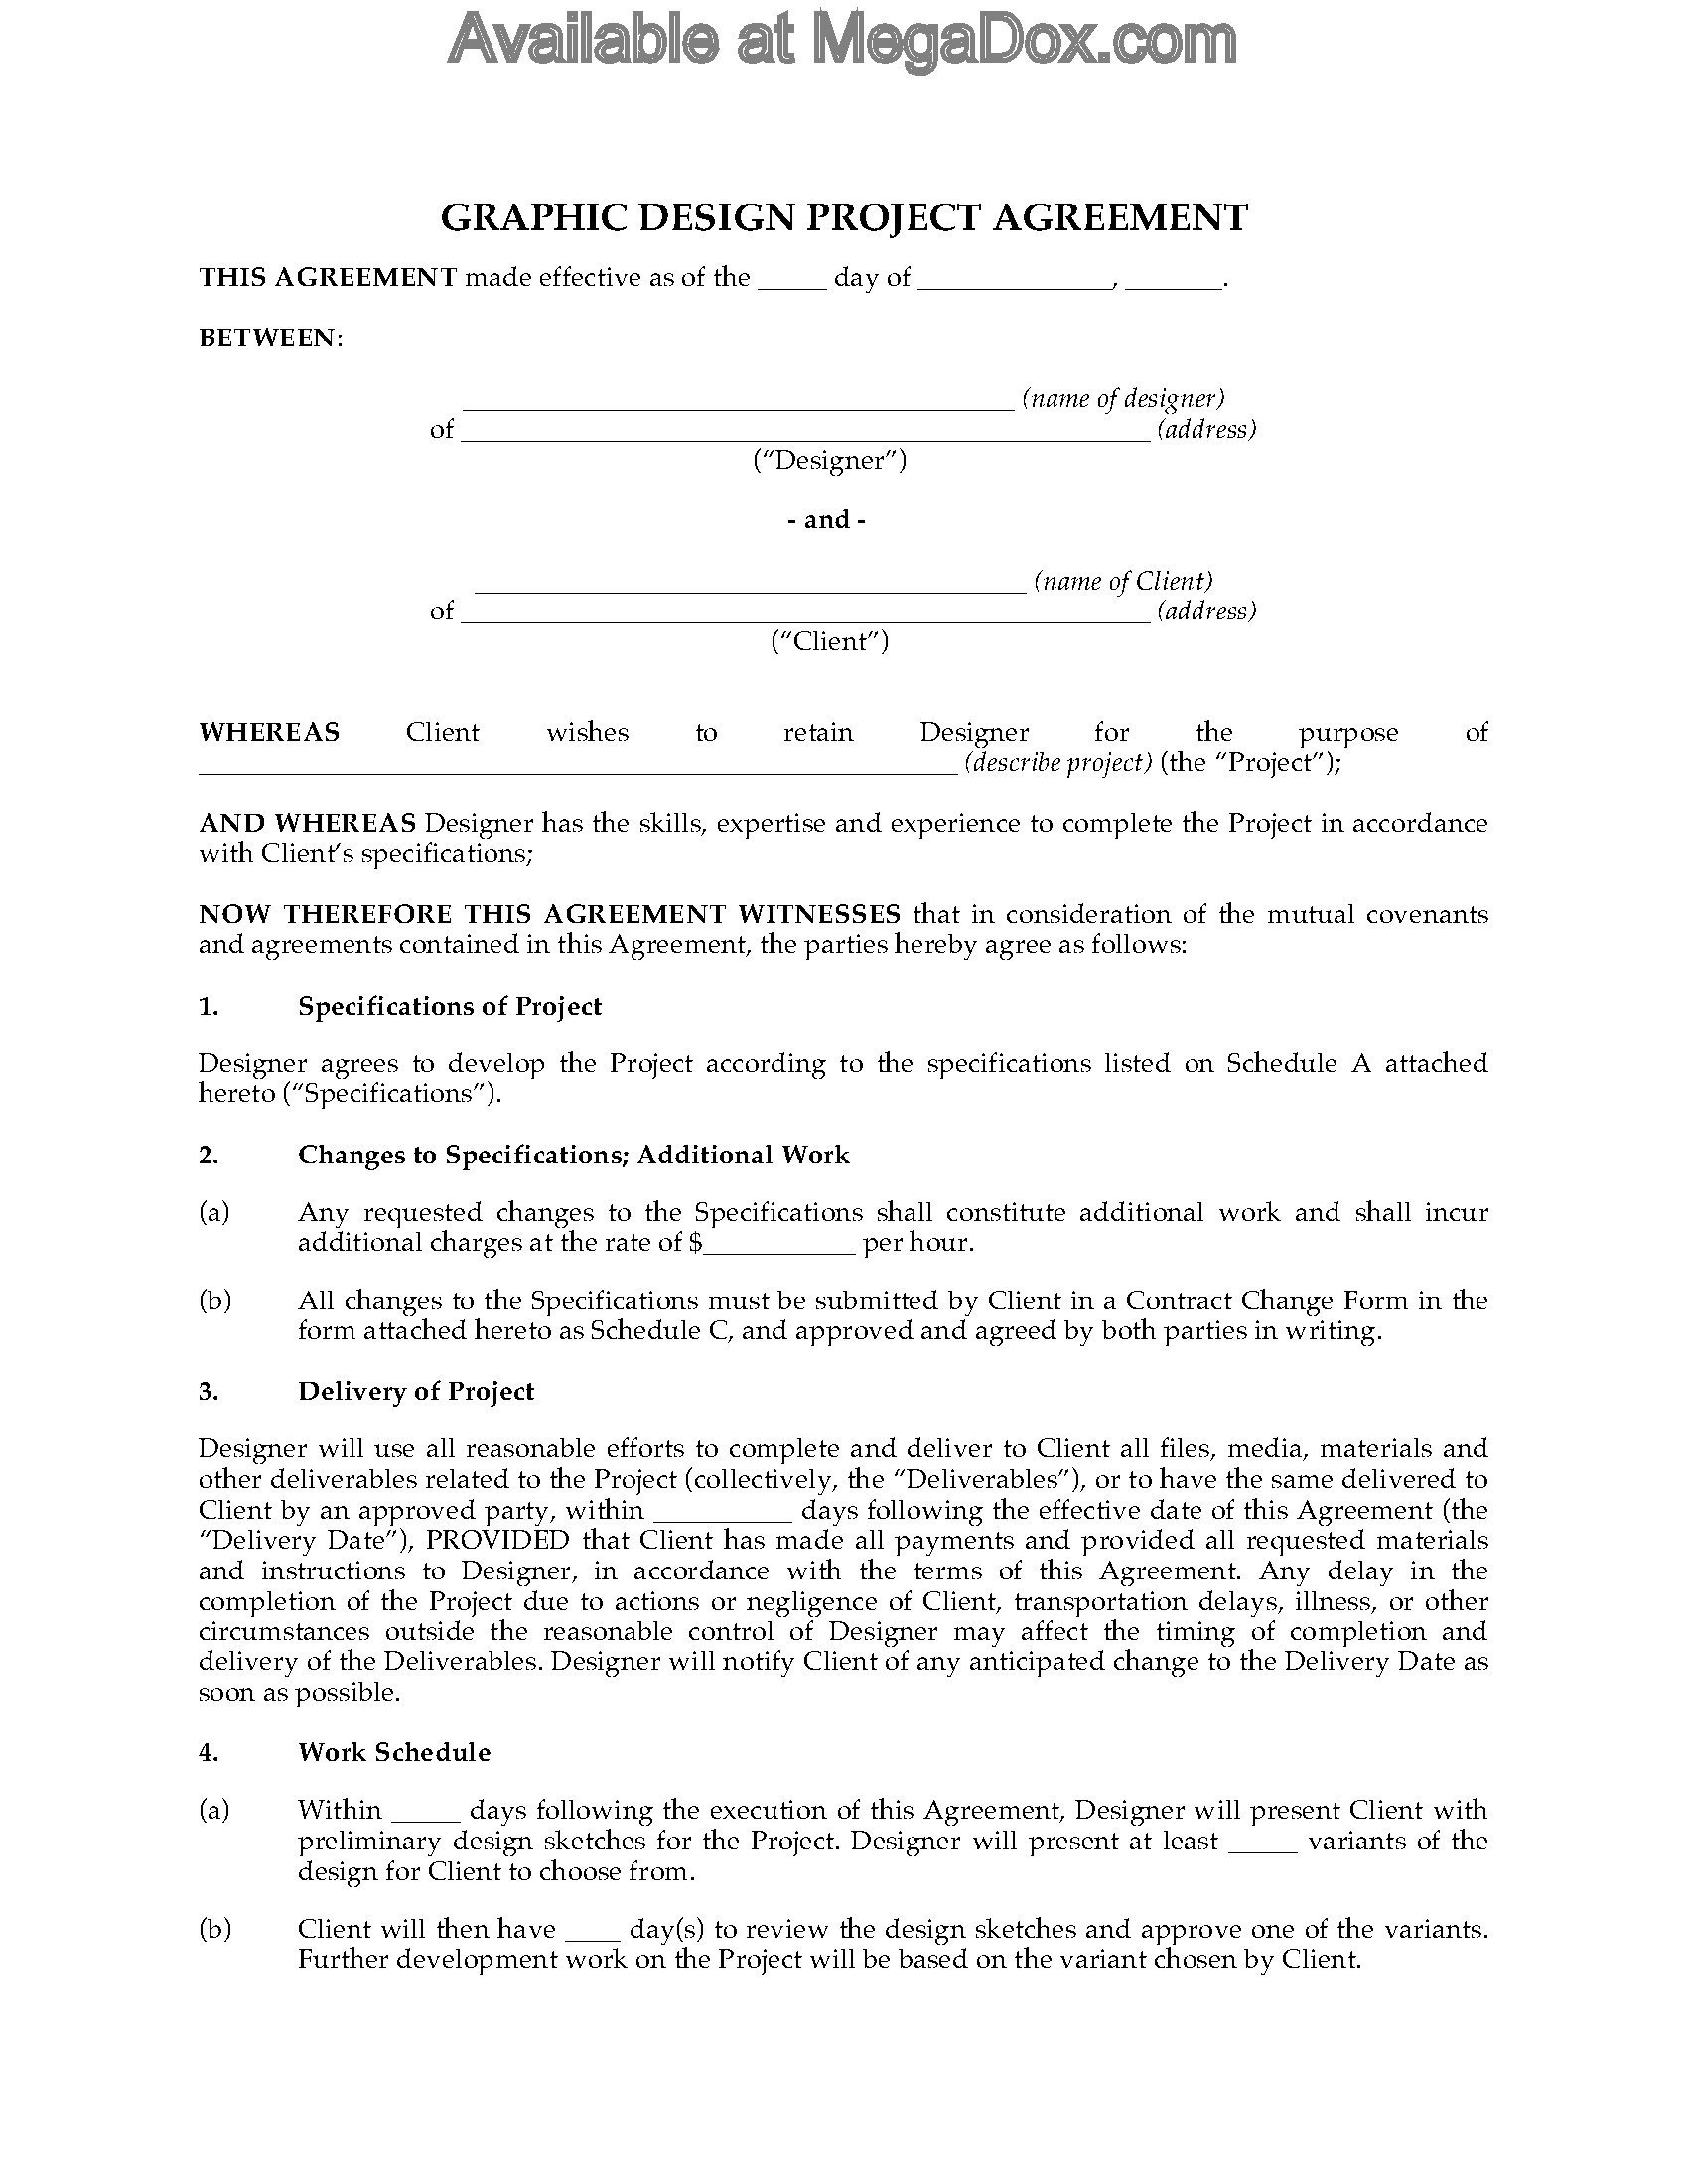 Graphic Design Contract Template Graphic Design Project Agreement